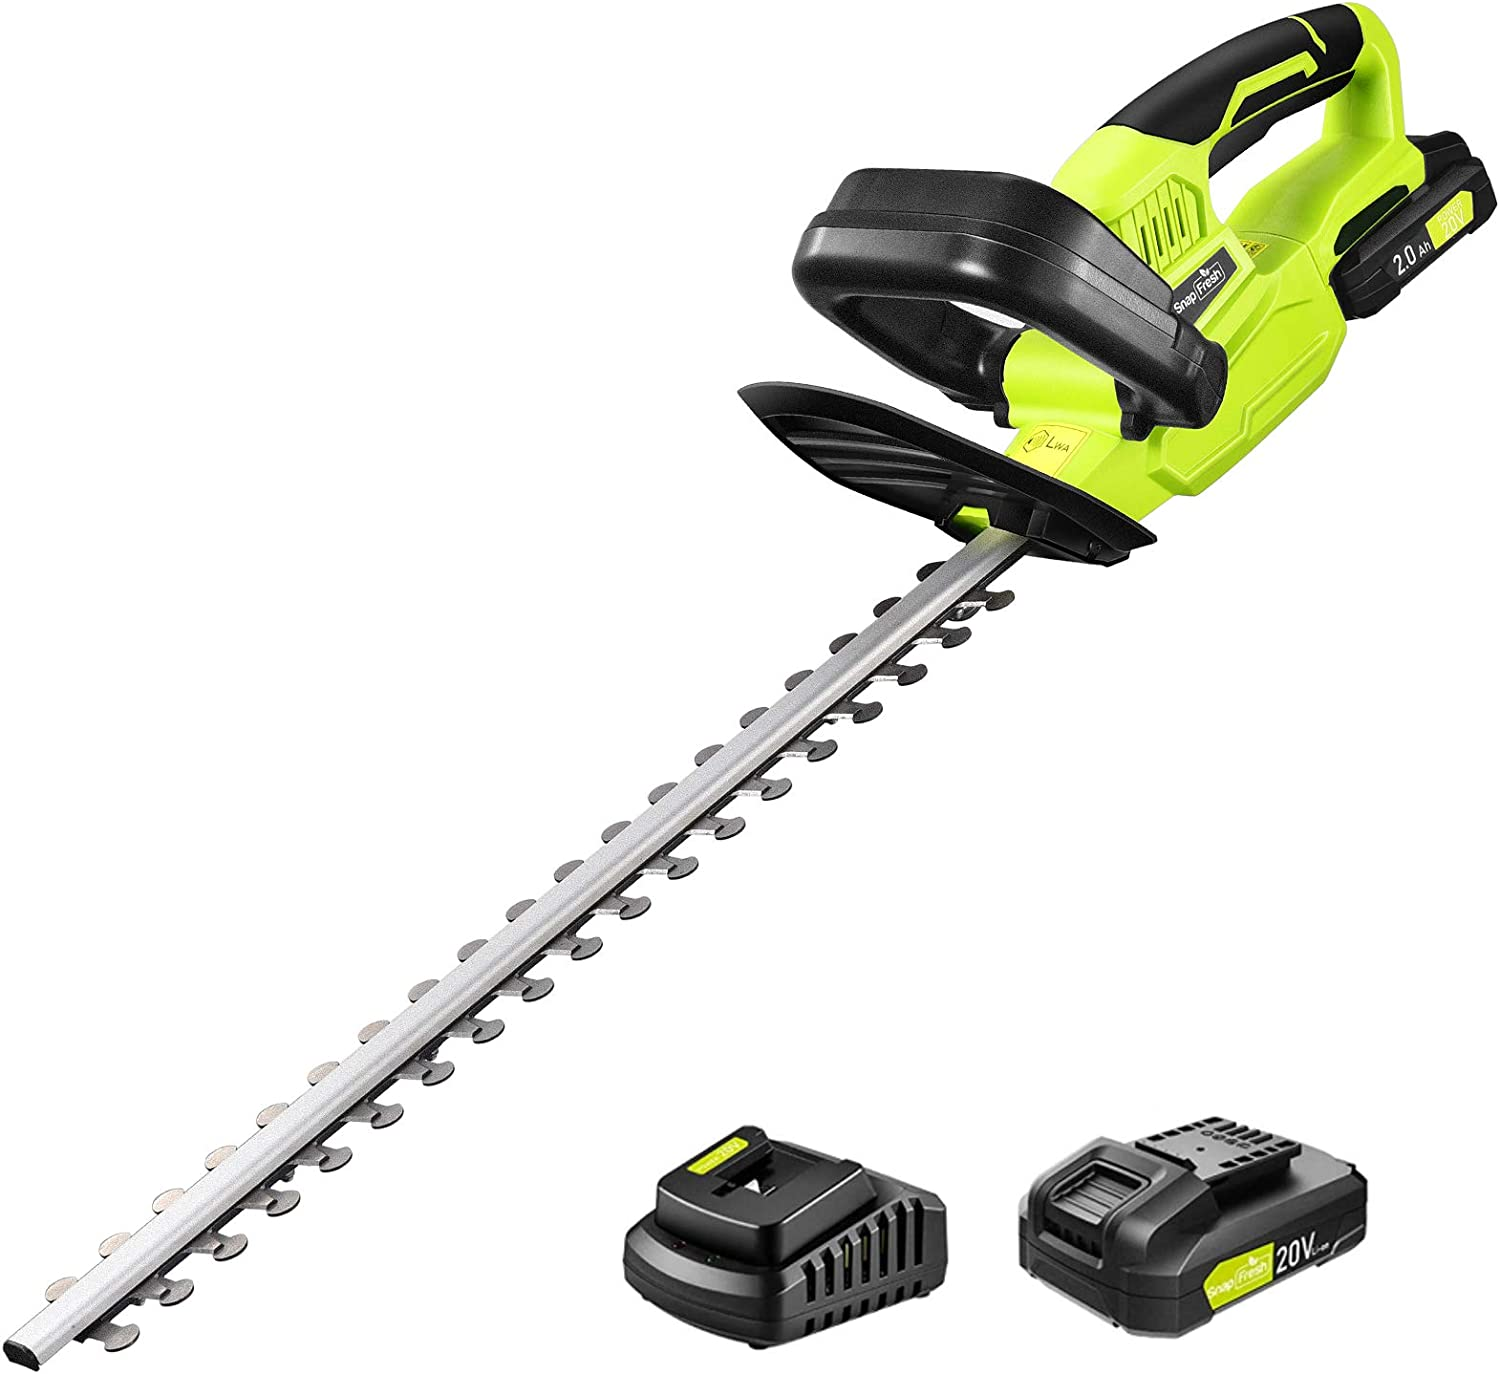 """Cordless Hedge Trimmer, 1400RPM Powerful Electric Hedge Trimmer Cordless with 22"""" Dual-Action Blade, 0.55"""